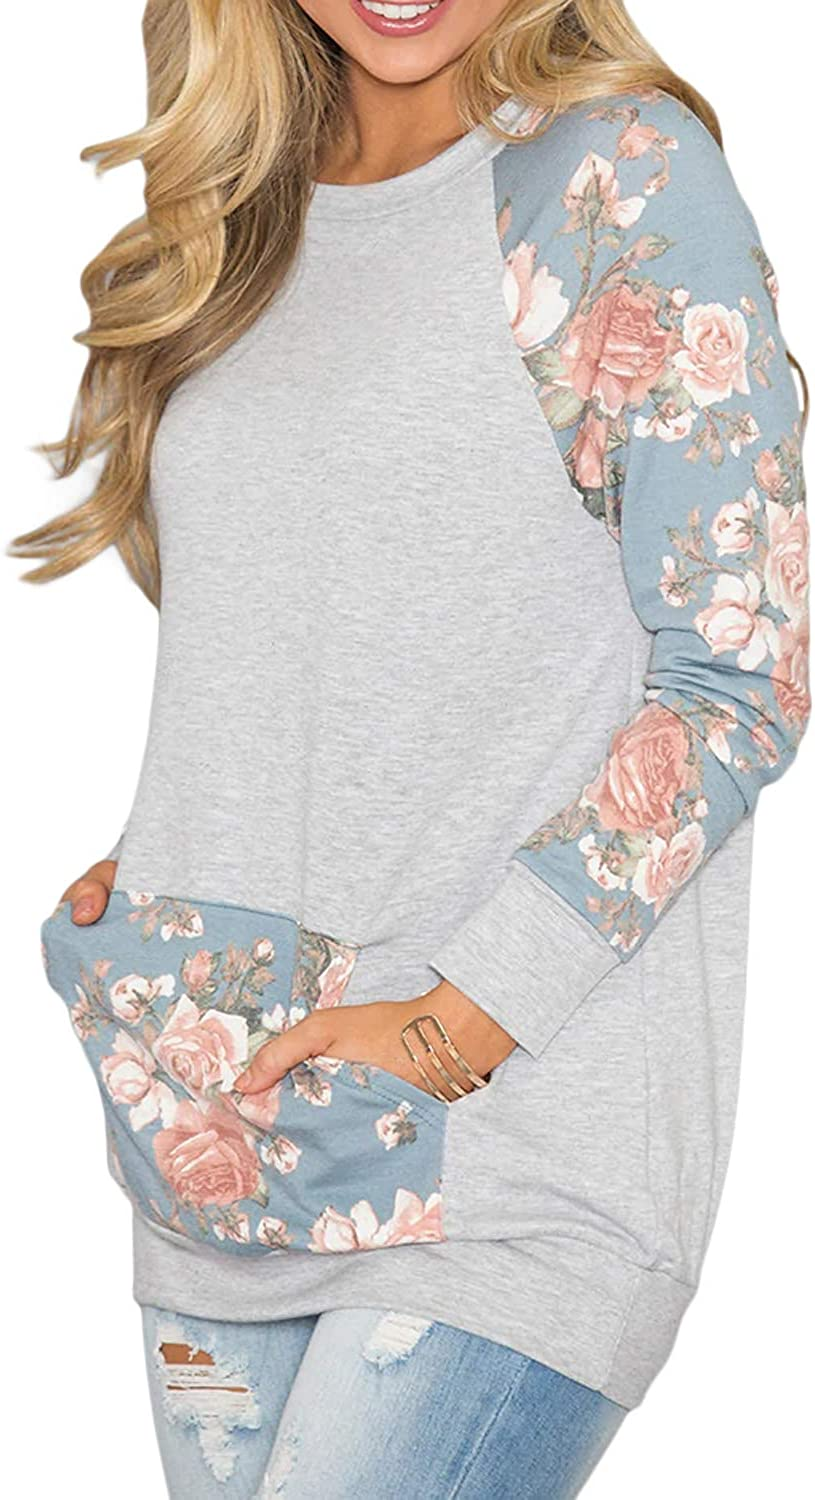 BLENCOT Womens Lightweight Floral Printed Long Sleeve Tunic Sweatshirt Tops with Kangaroo Pocket